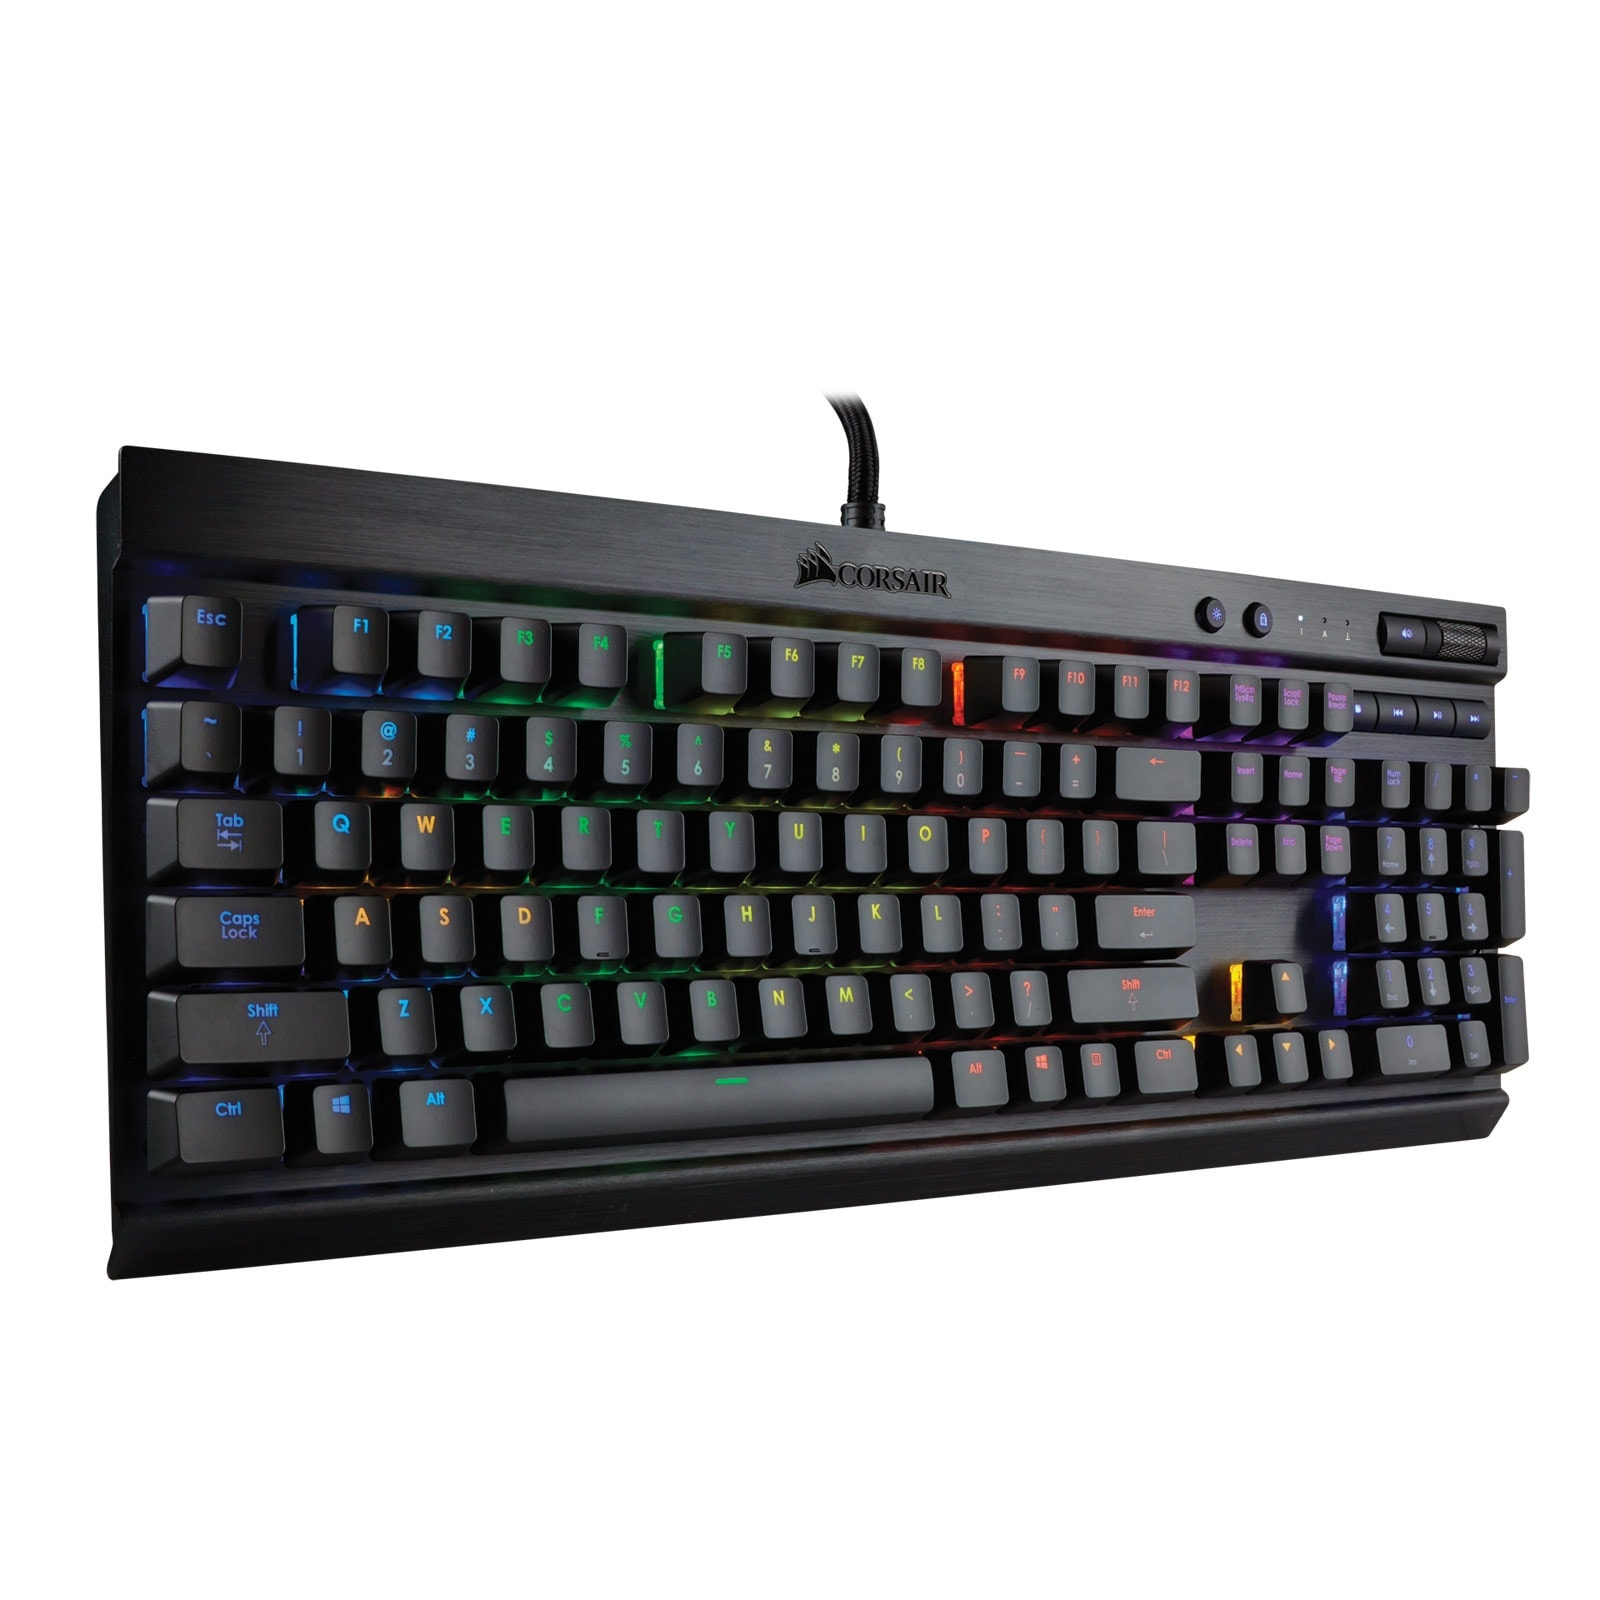 Corsair K70 RGB LED Mechanical MX RED CH-9000118-FR (CH-9000118-FR) - Achat / Vente Clavier PC sur Cybertek.fr - 1